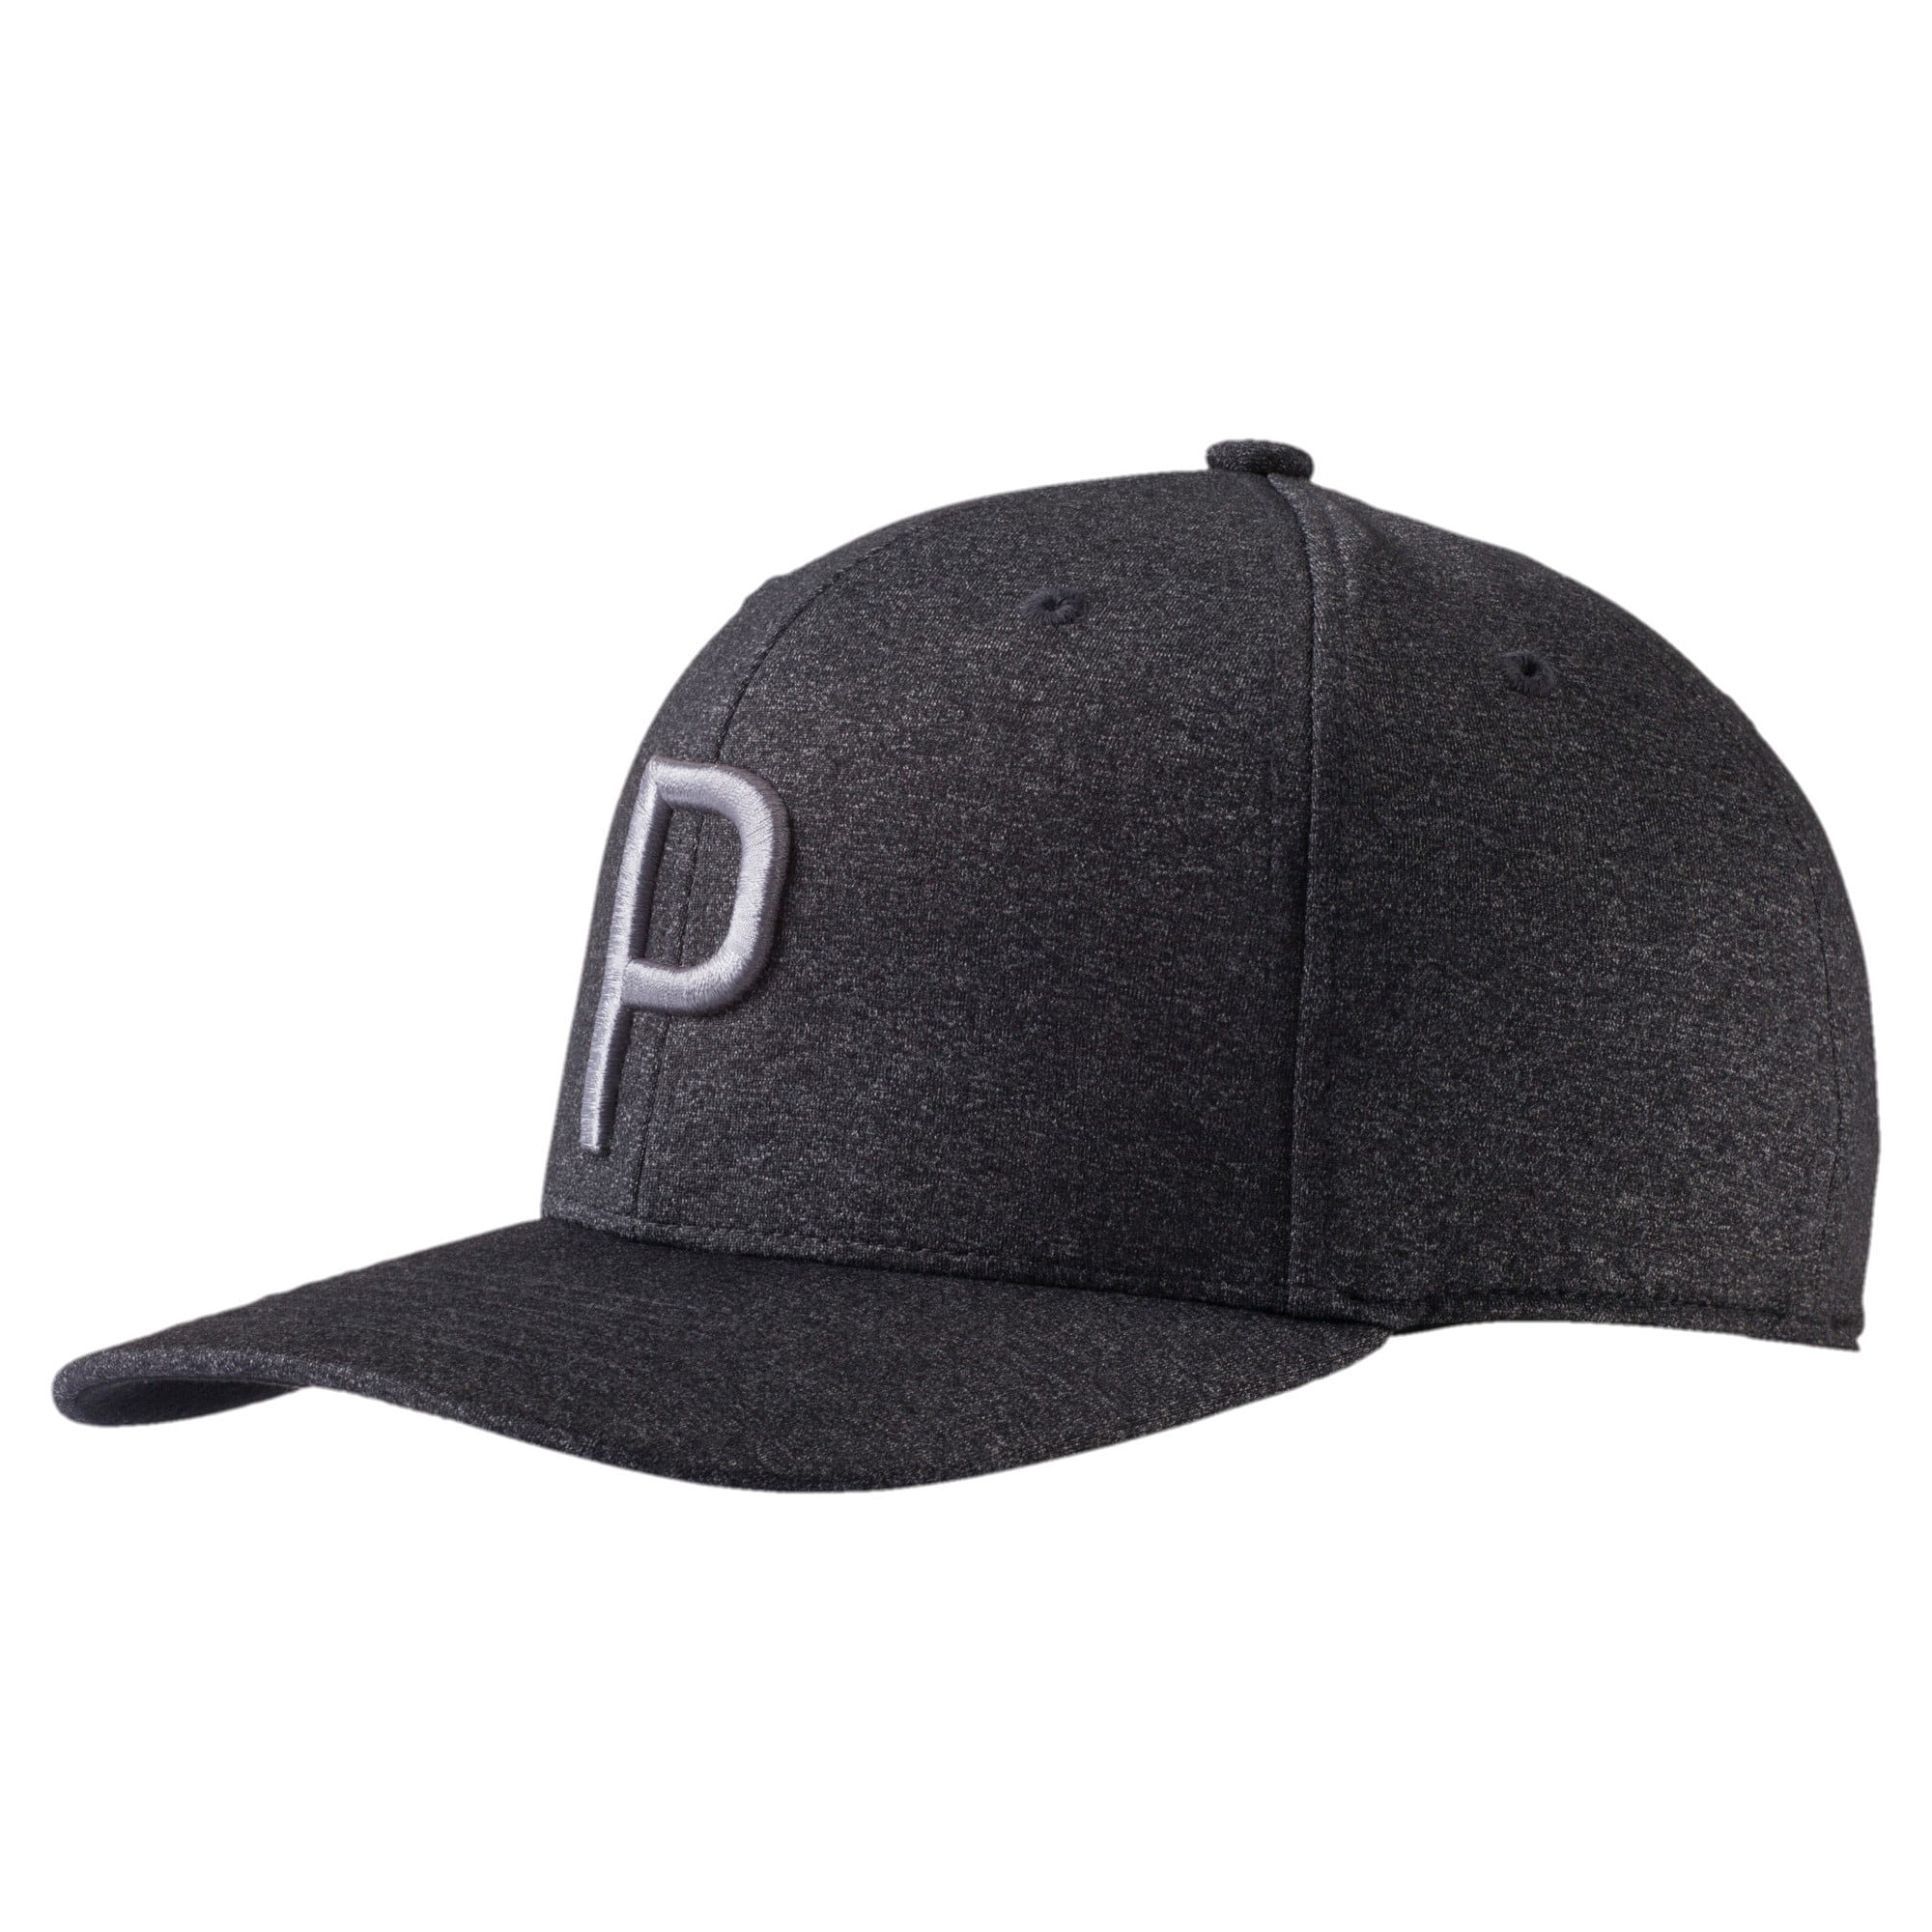 Thumbnail 1 of Golf Men's P Snapback Cap, Puma Black Heather, medium